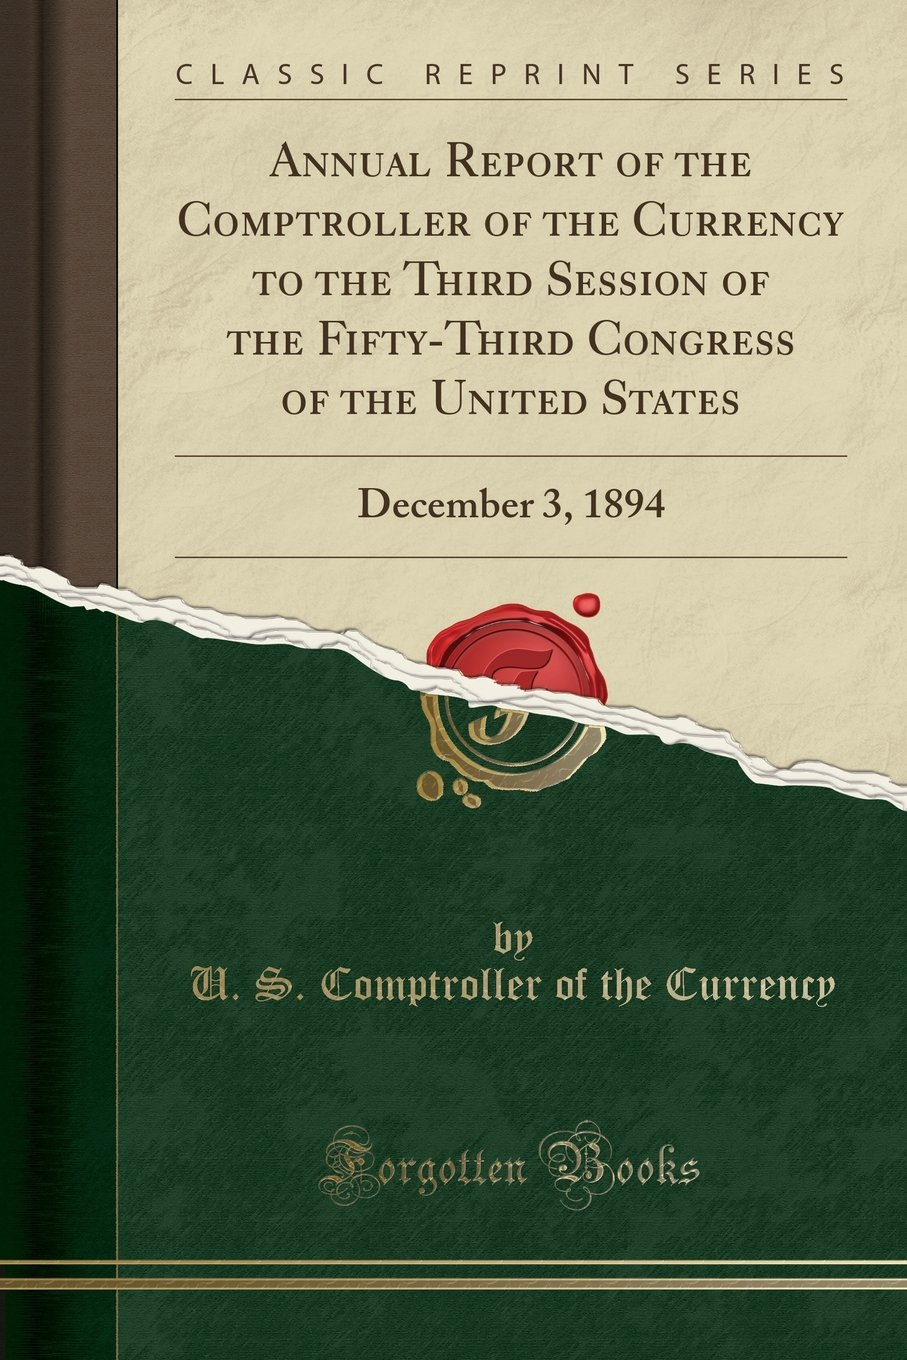 Annual Report of the Comptroller of the Currency to the Third Session of the Fifty-Third Congress of the United States: December 3, 1894 (Classic Reprint) pdf